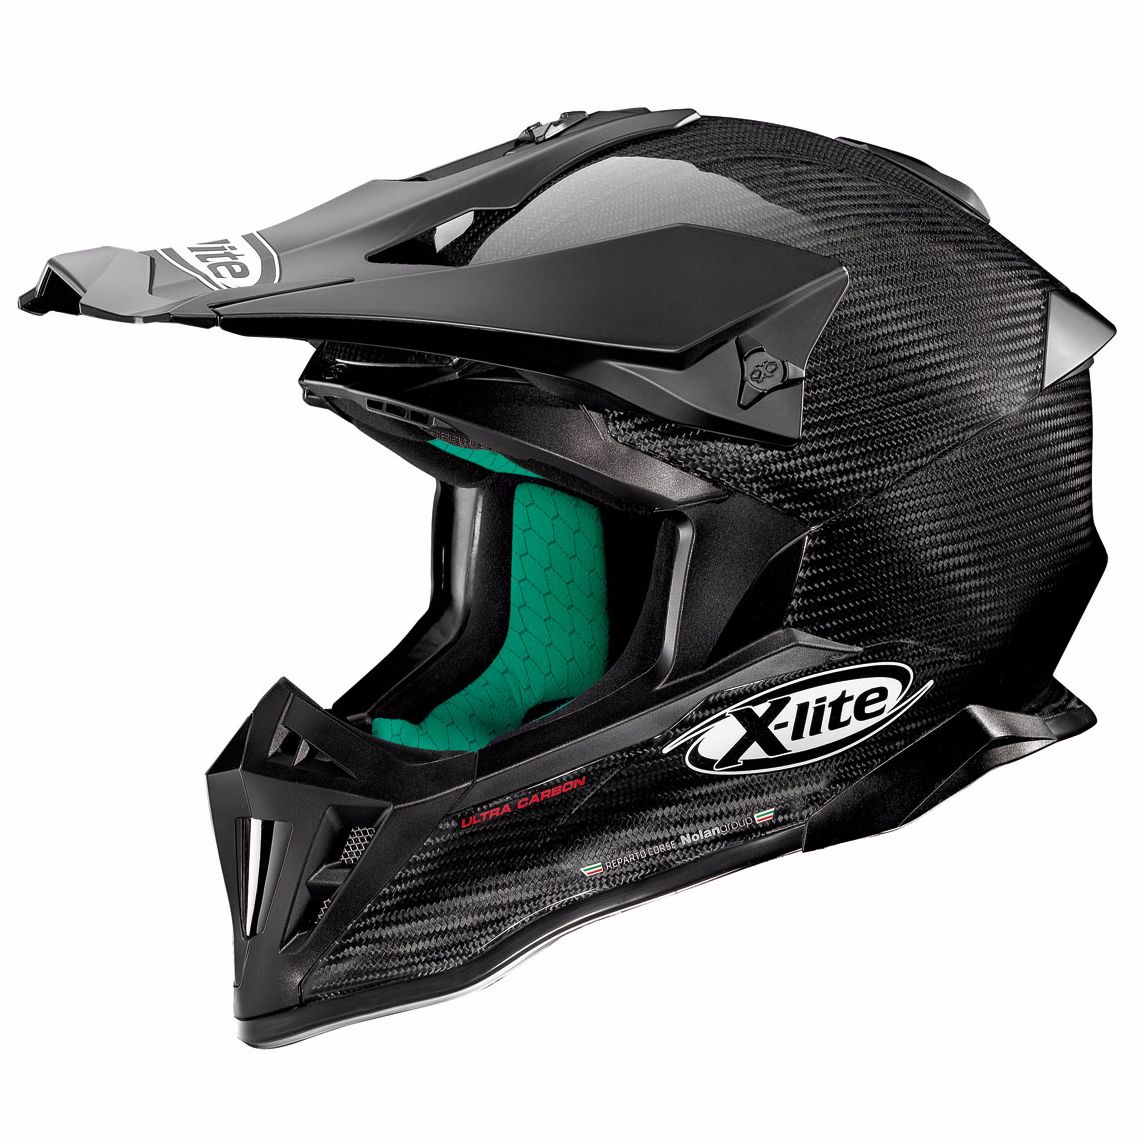 Casque Cross X-lite X-502 Ultra Carbon - Puro Carbon 1